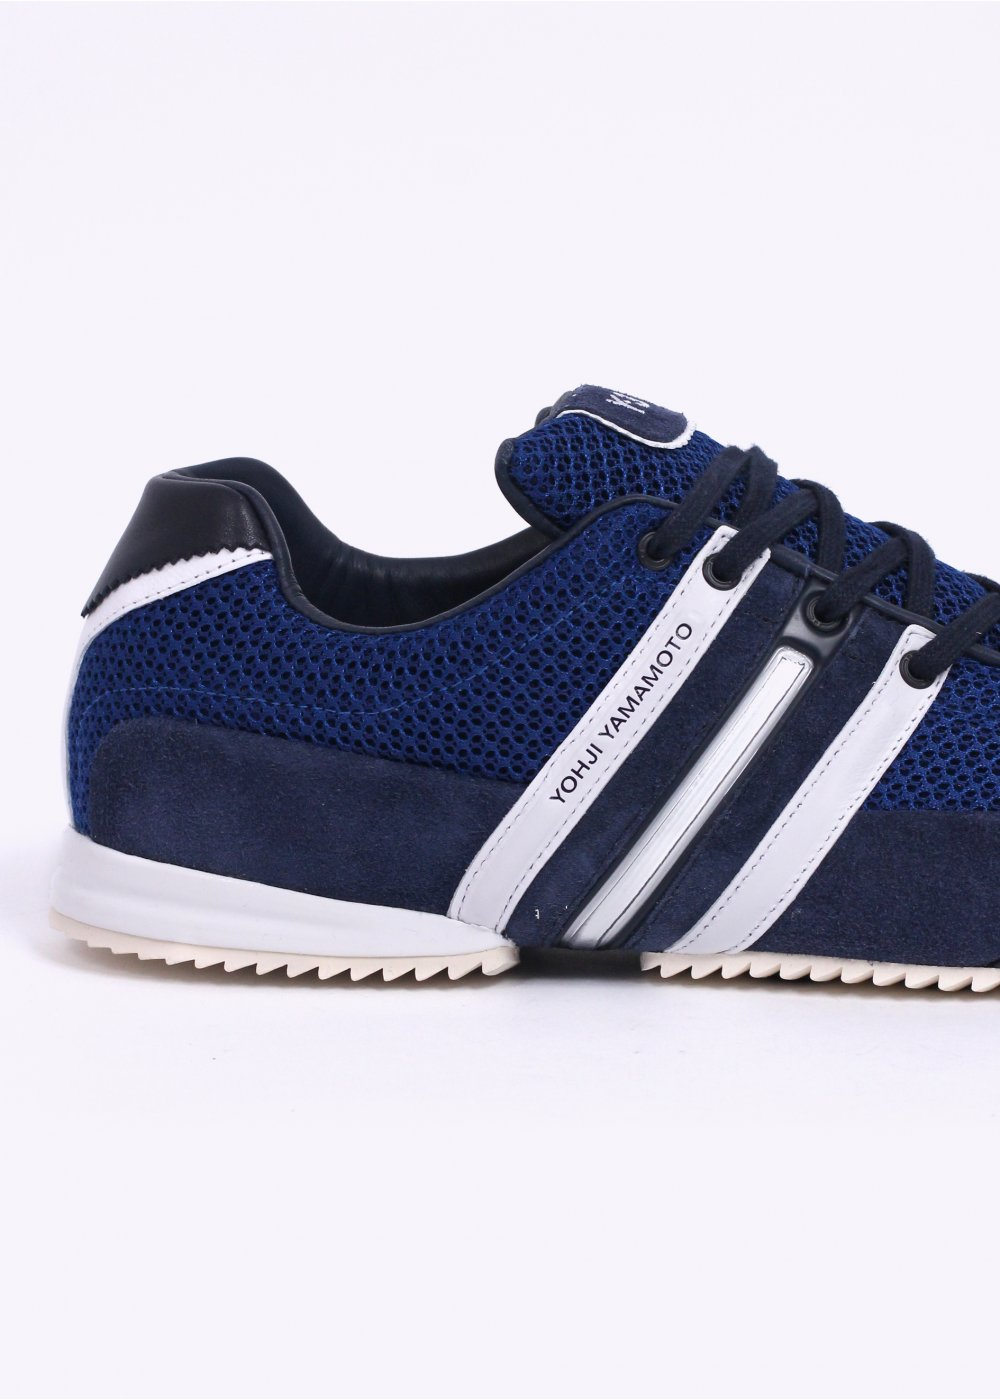 8bba211fef1 adidas Y-3 Sprint Trainers - Navy   Royal   White